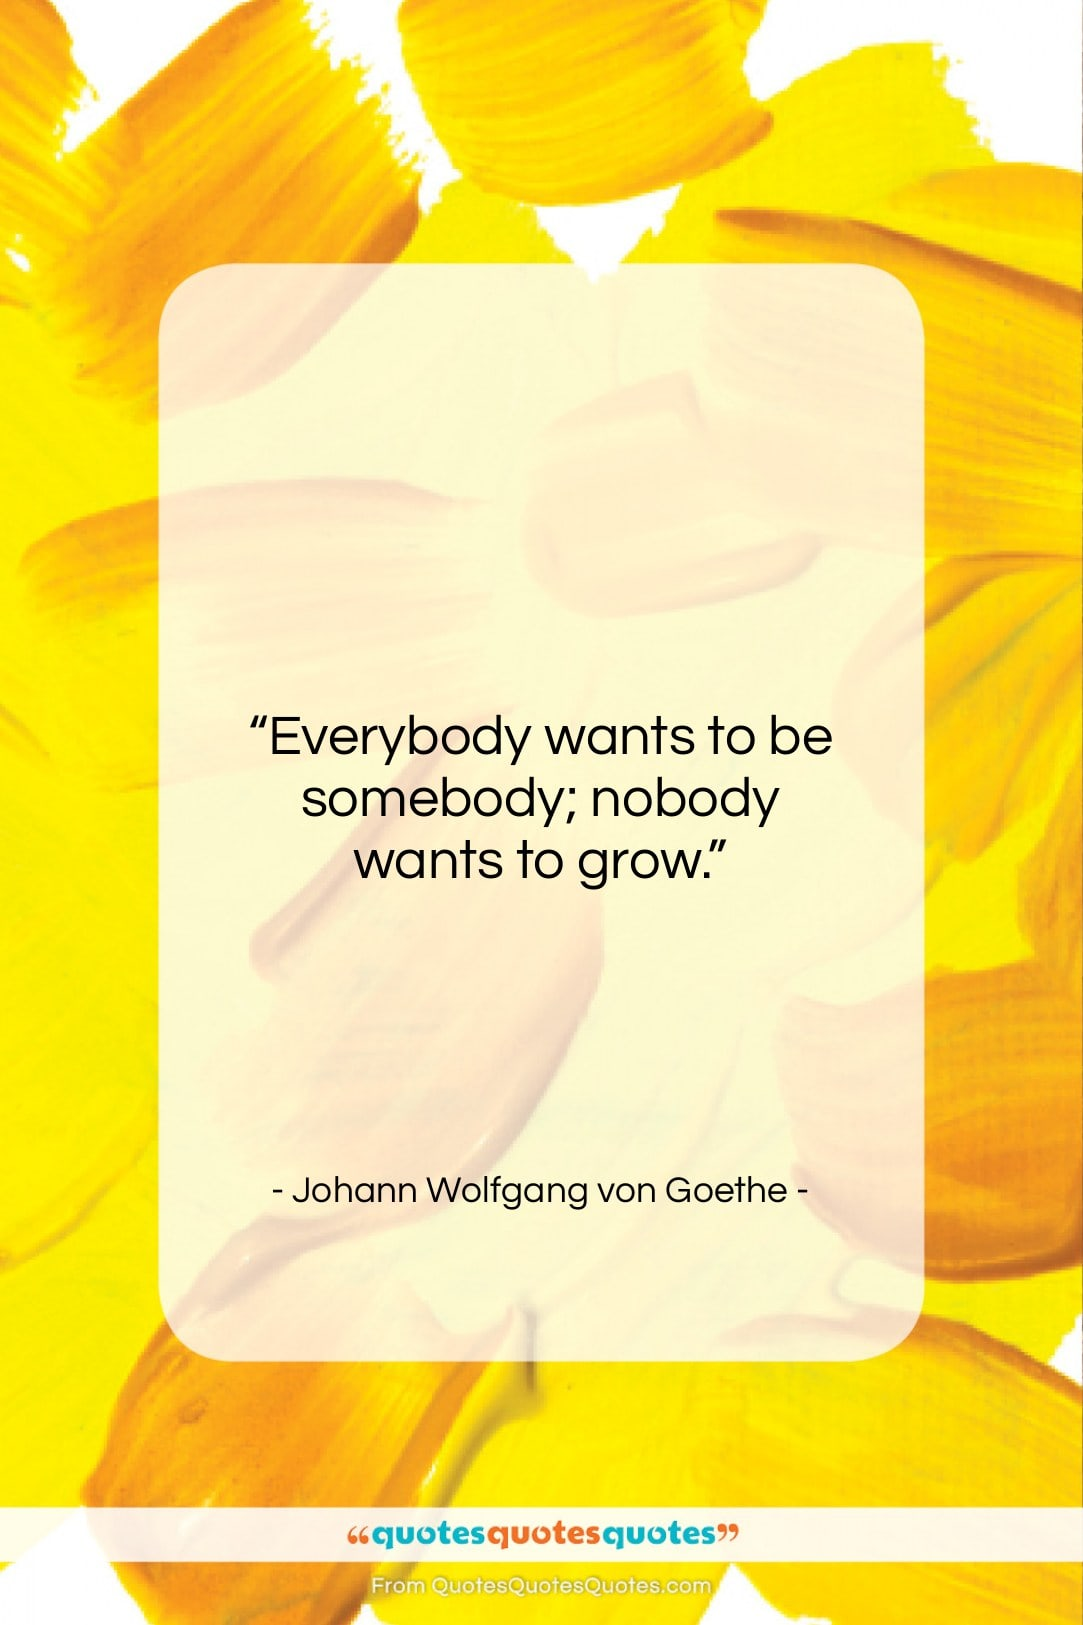 """Johann Wolfgang von Goethe quote: """"Everybody wants to be somebody; nobody wants…""""- at QuotesQuotesQuotes.com"""